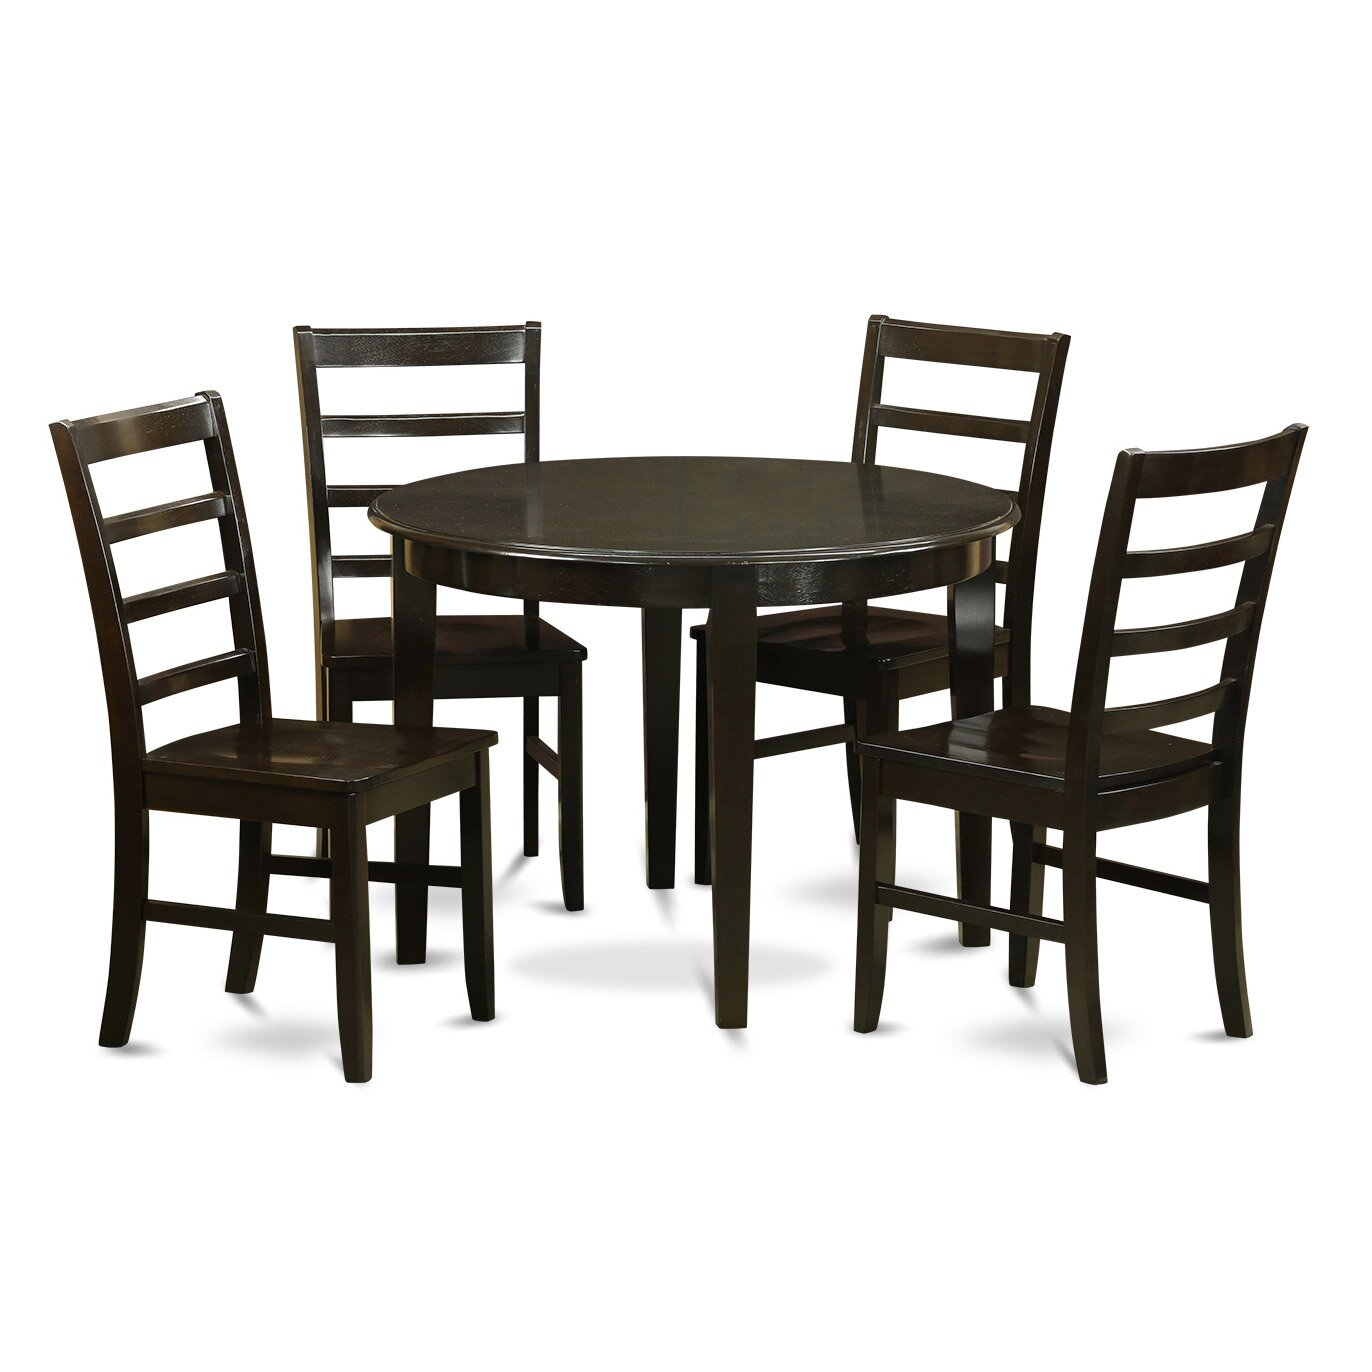 East west boston 5 piece dining set wayfair for Small kitchen table sets for 4